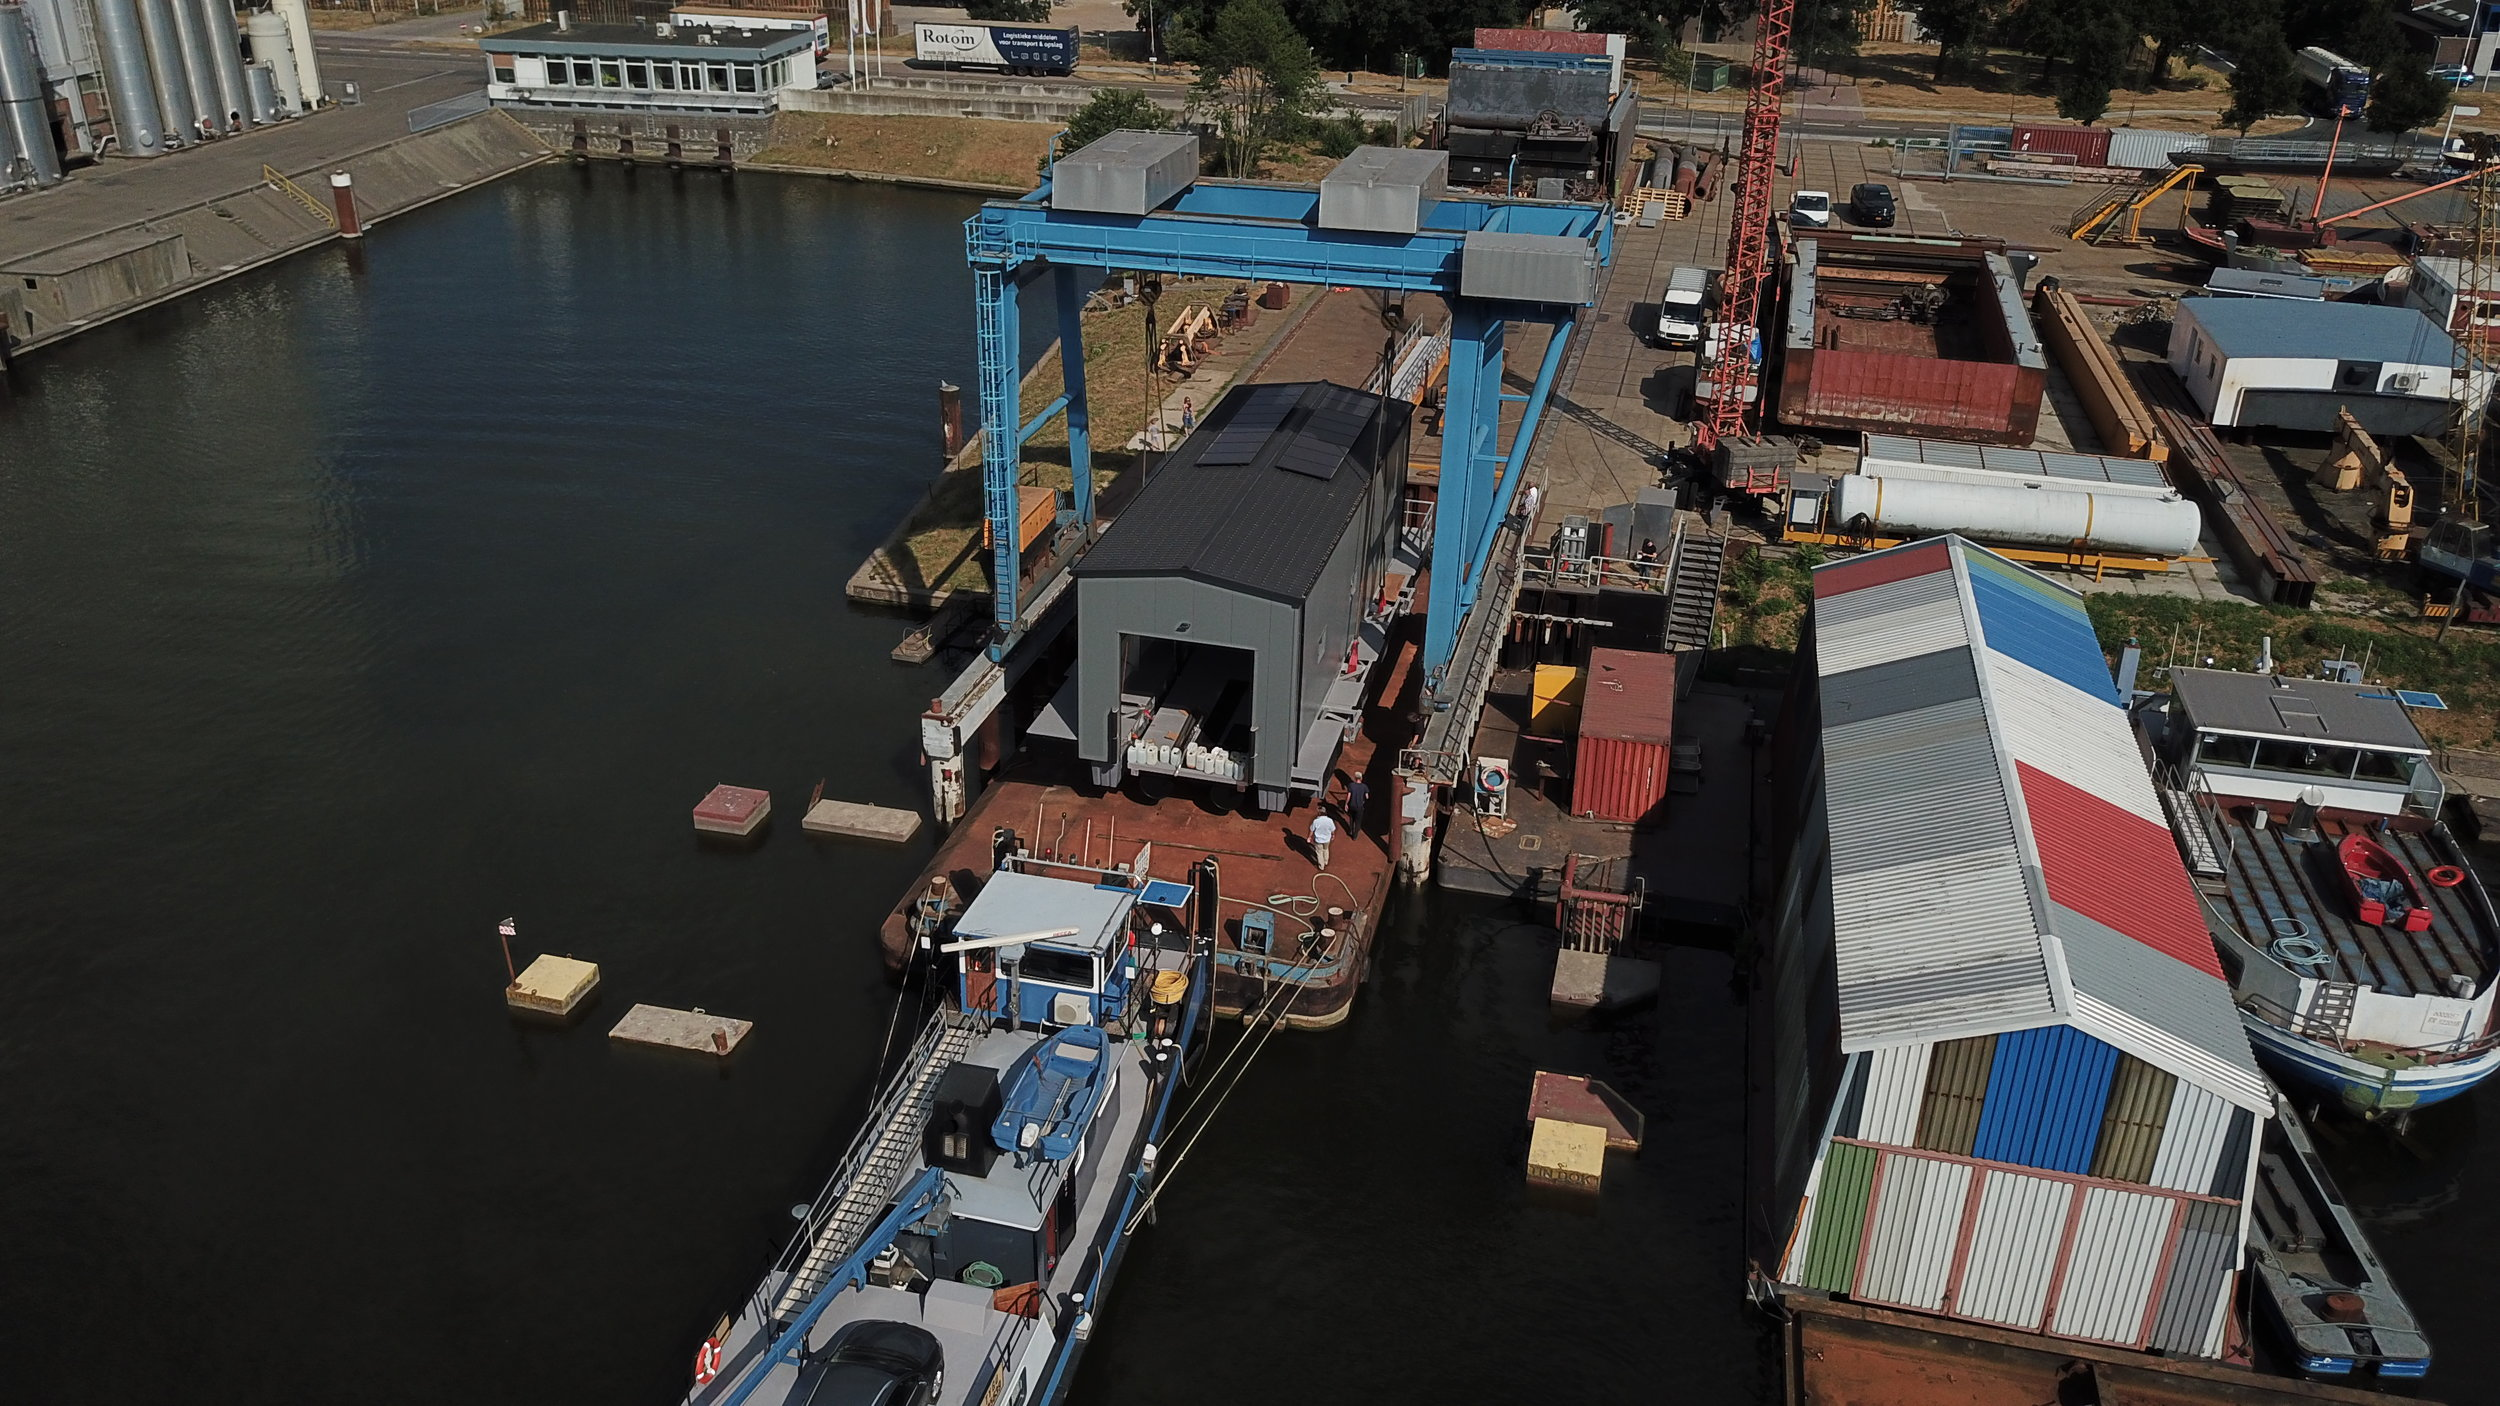 Drone view floating boathouse.JPG